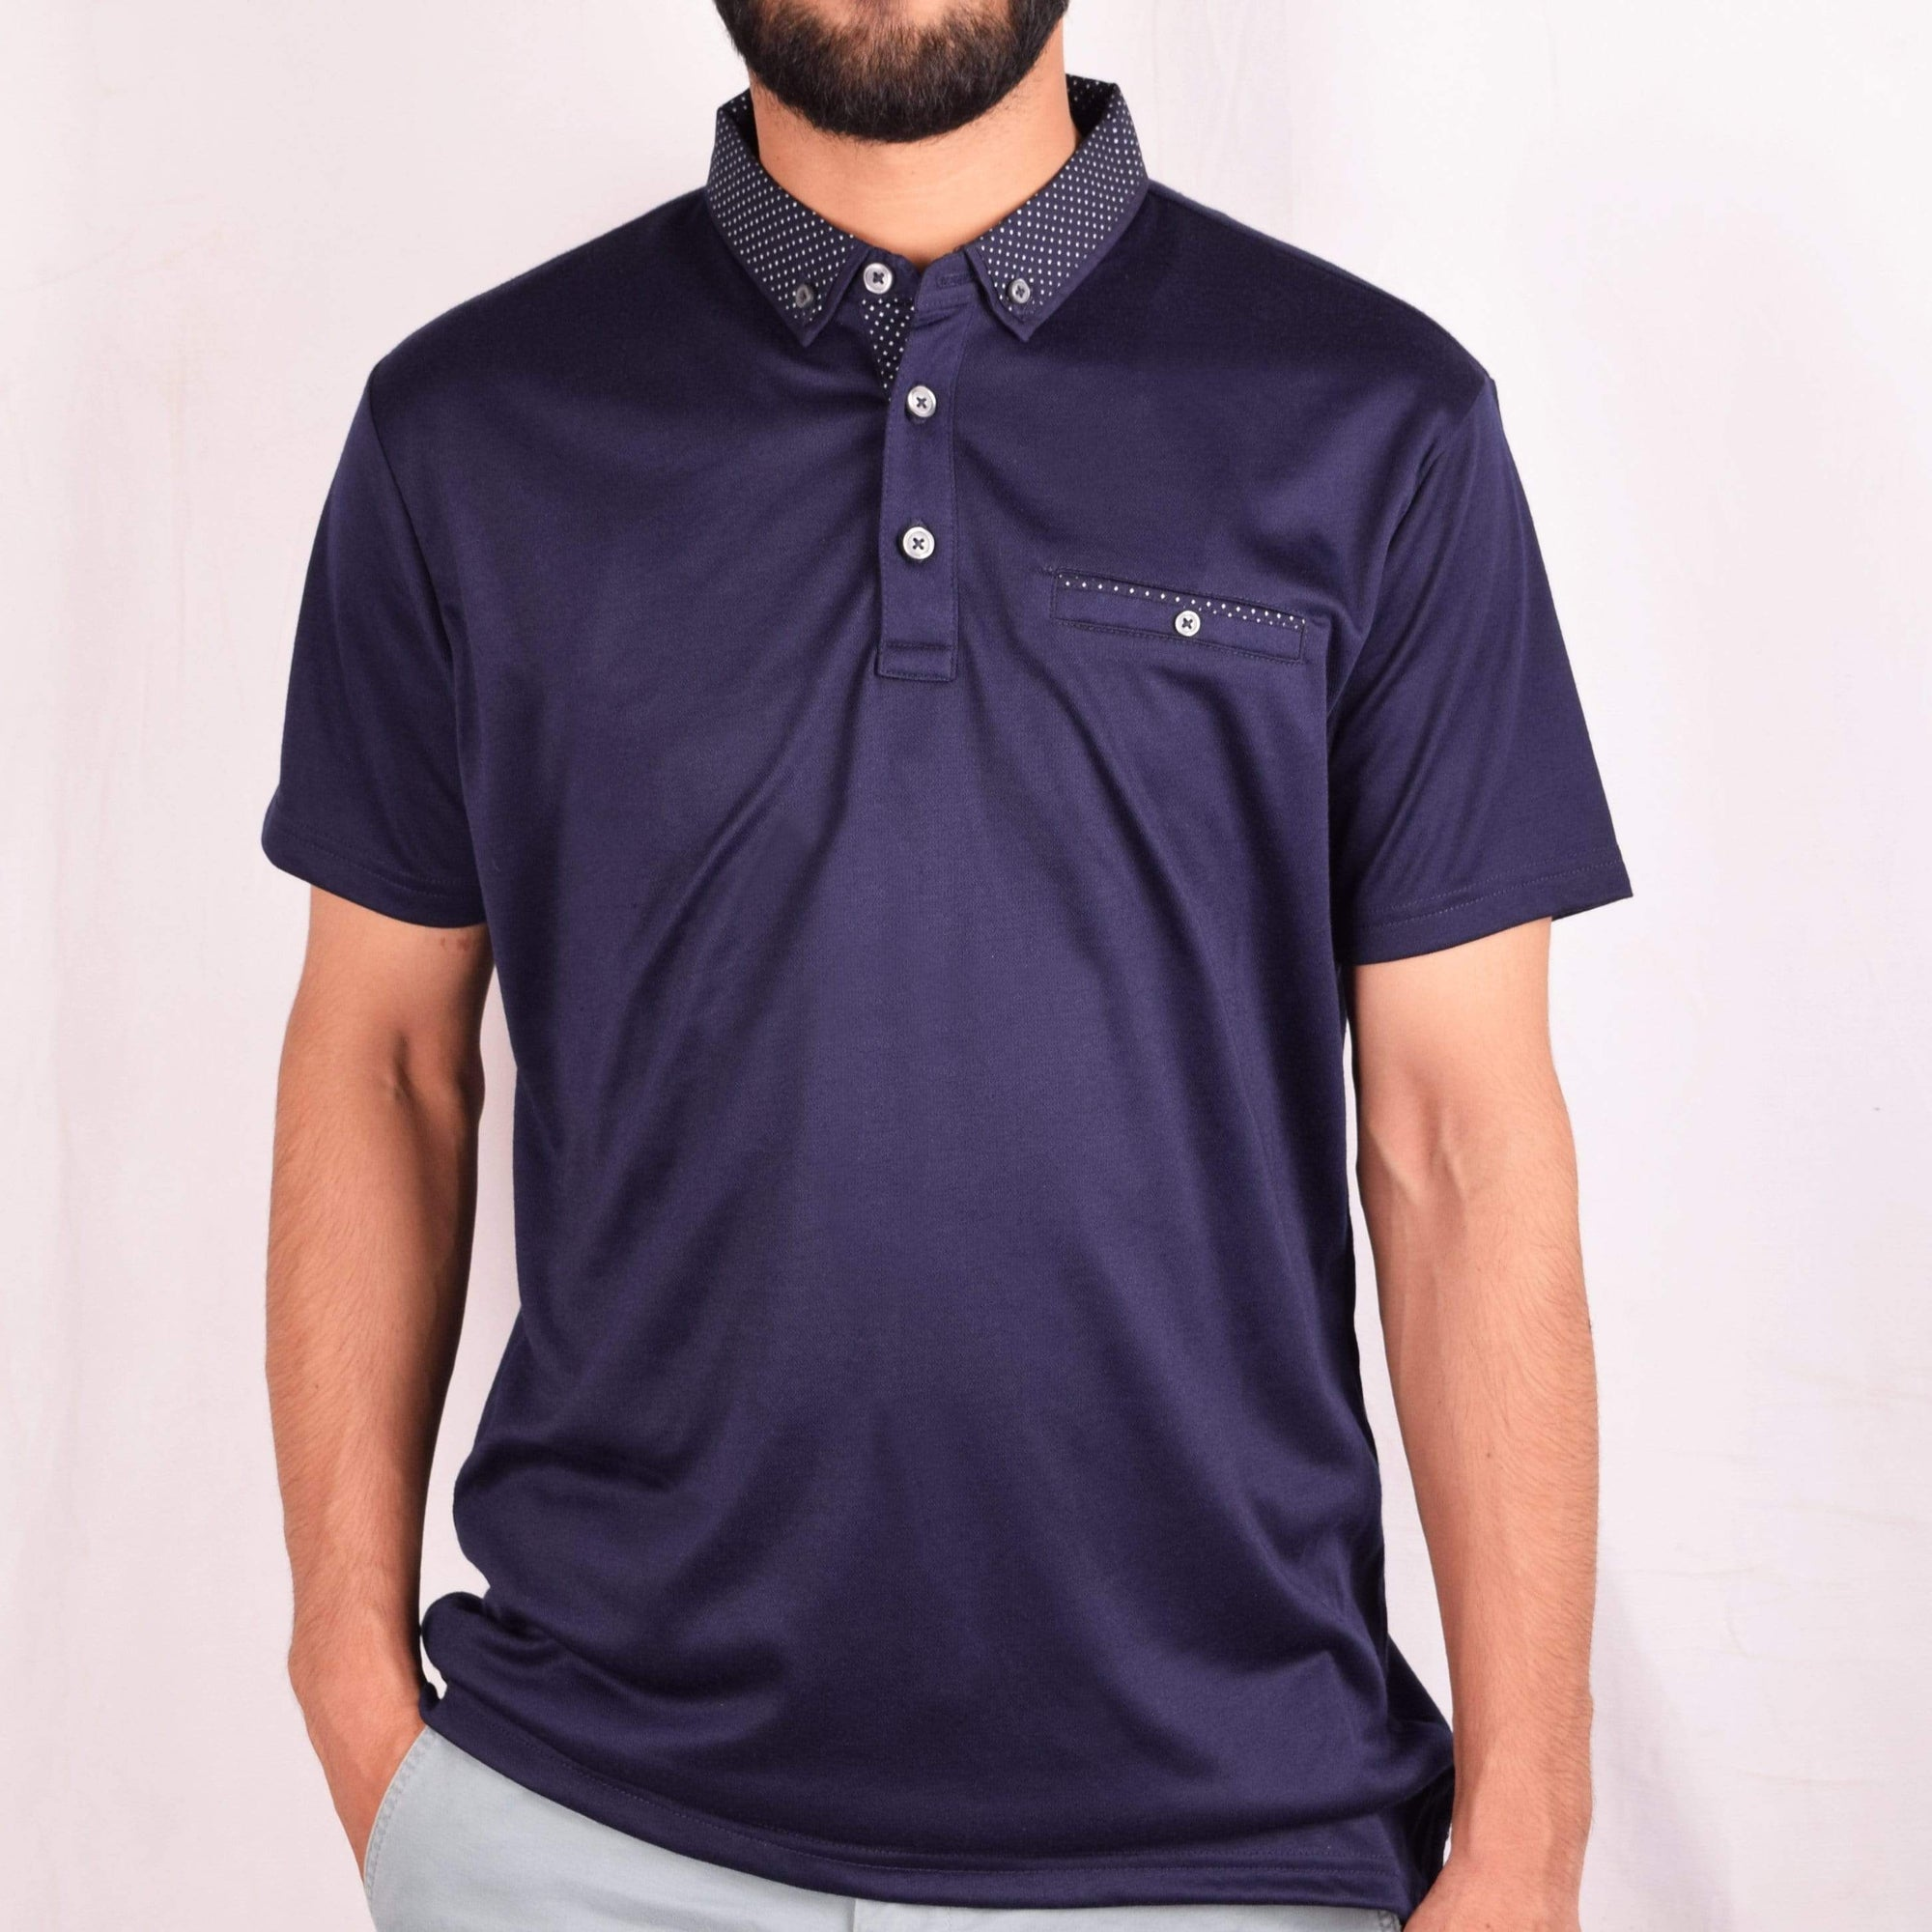 Henry James Men's Polo Shirt Dark Navy / S MUST HAVE HENRY JAMES CONSTRA SHORT SLEEVE POLO SHIRT